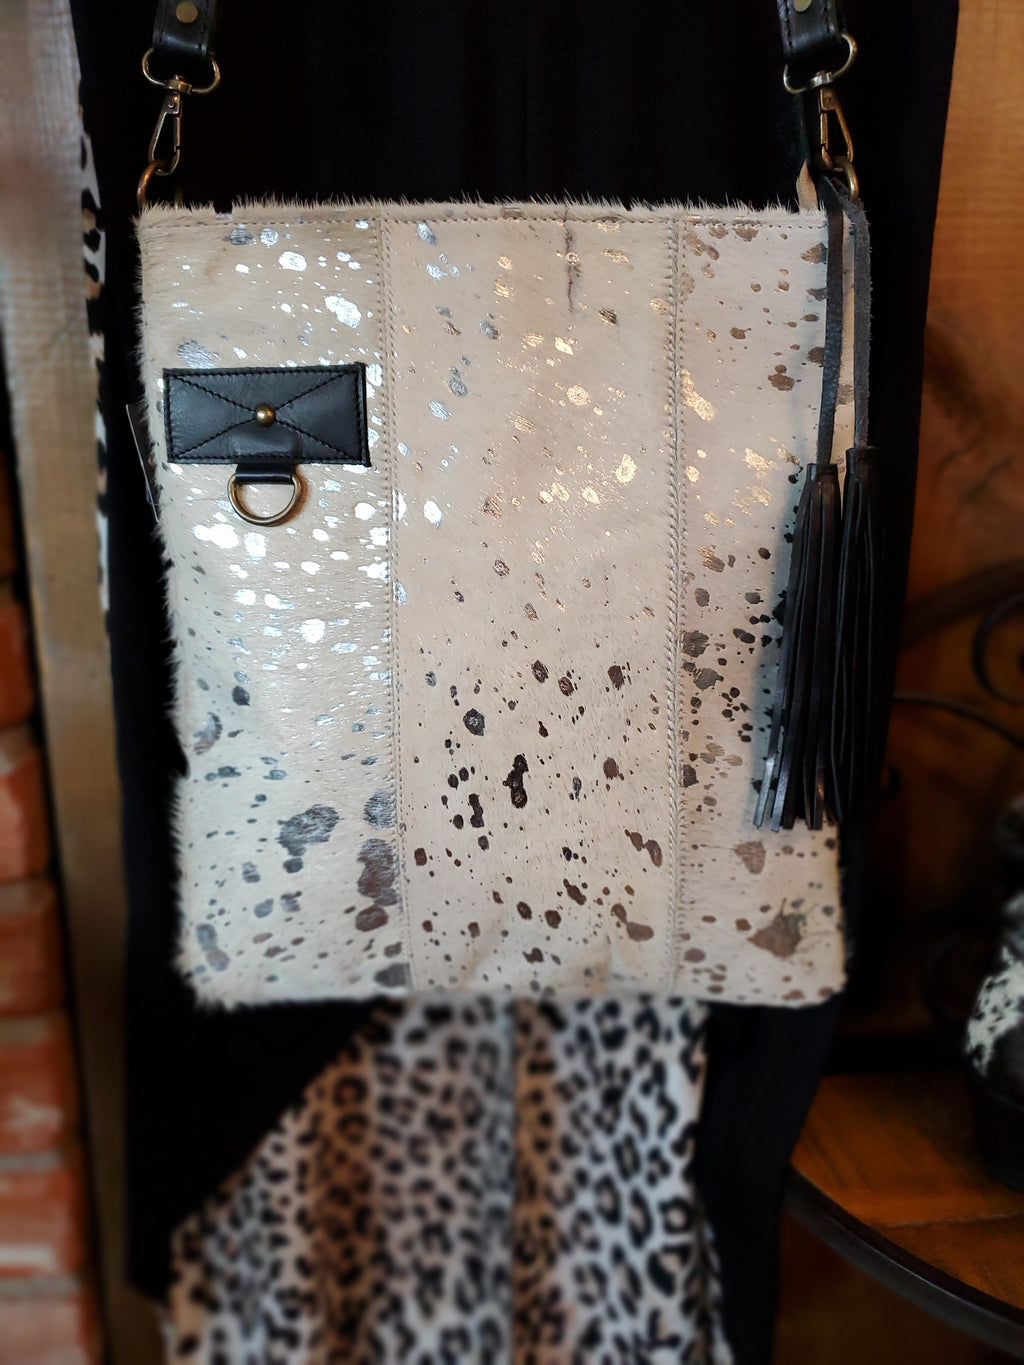 Black and White and Silver Cowhide Handbag with Black Leather Crossbody Strap